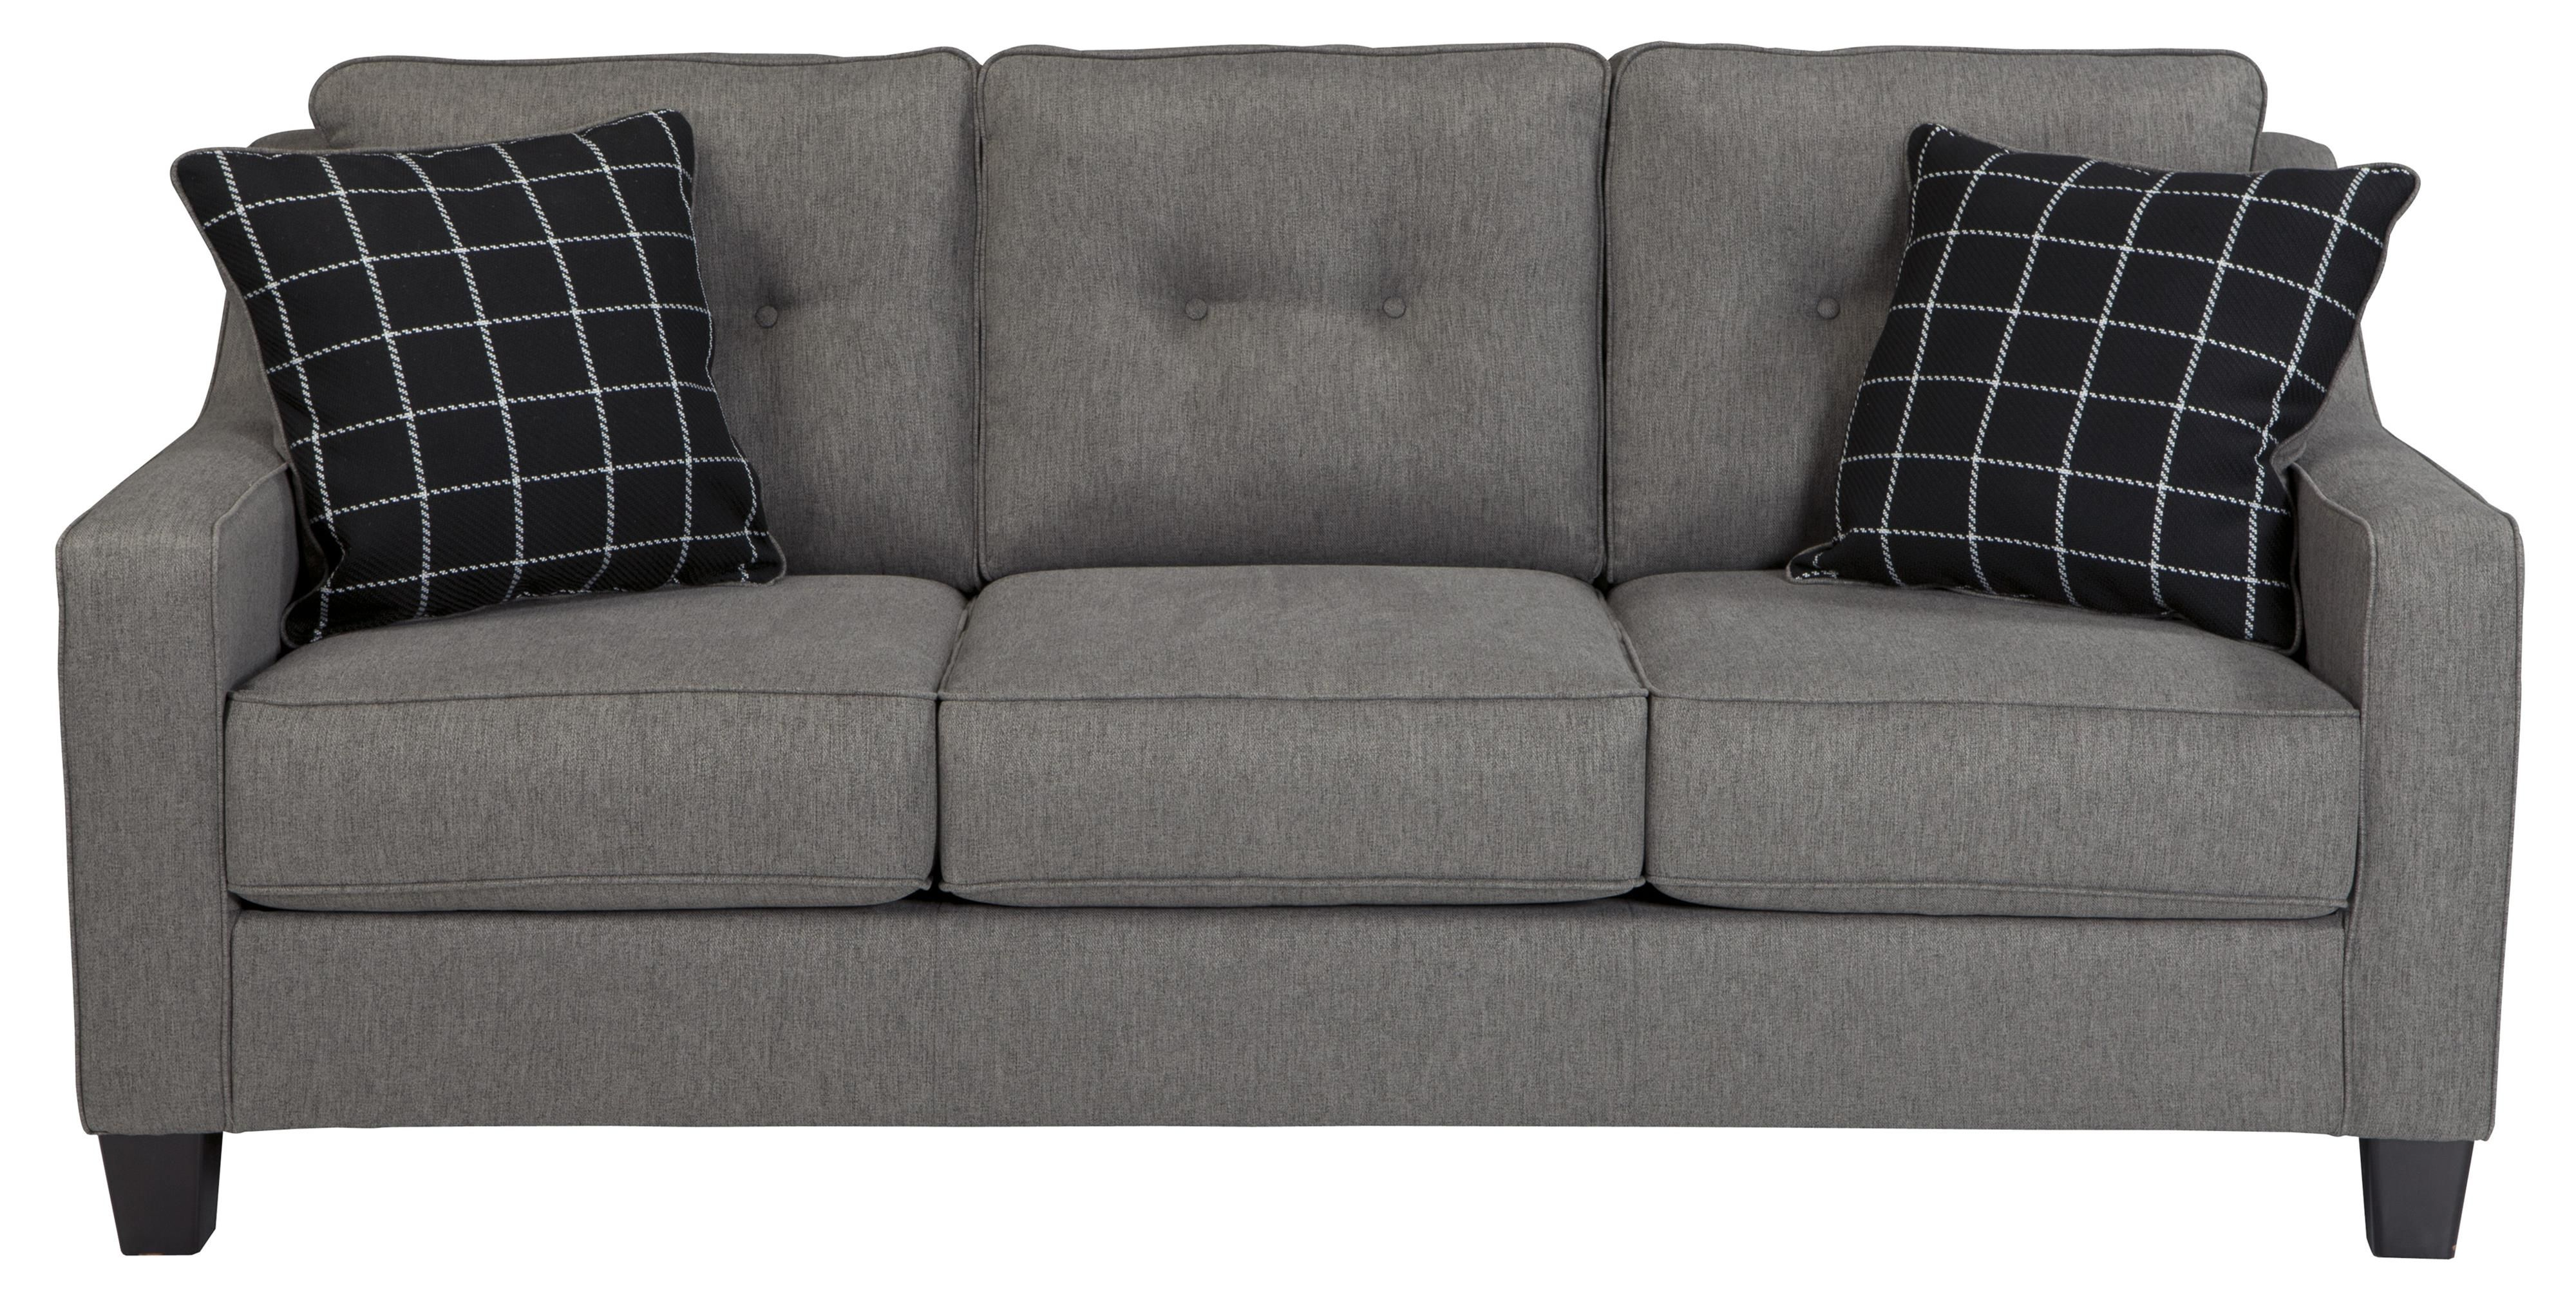 Brindon Contemporary Queen Sofa Sleeper with Track Arms Tufted